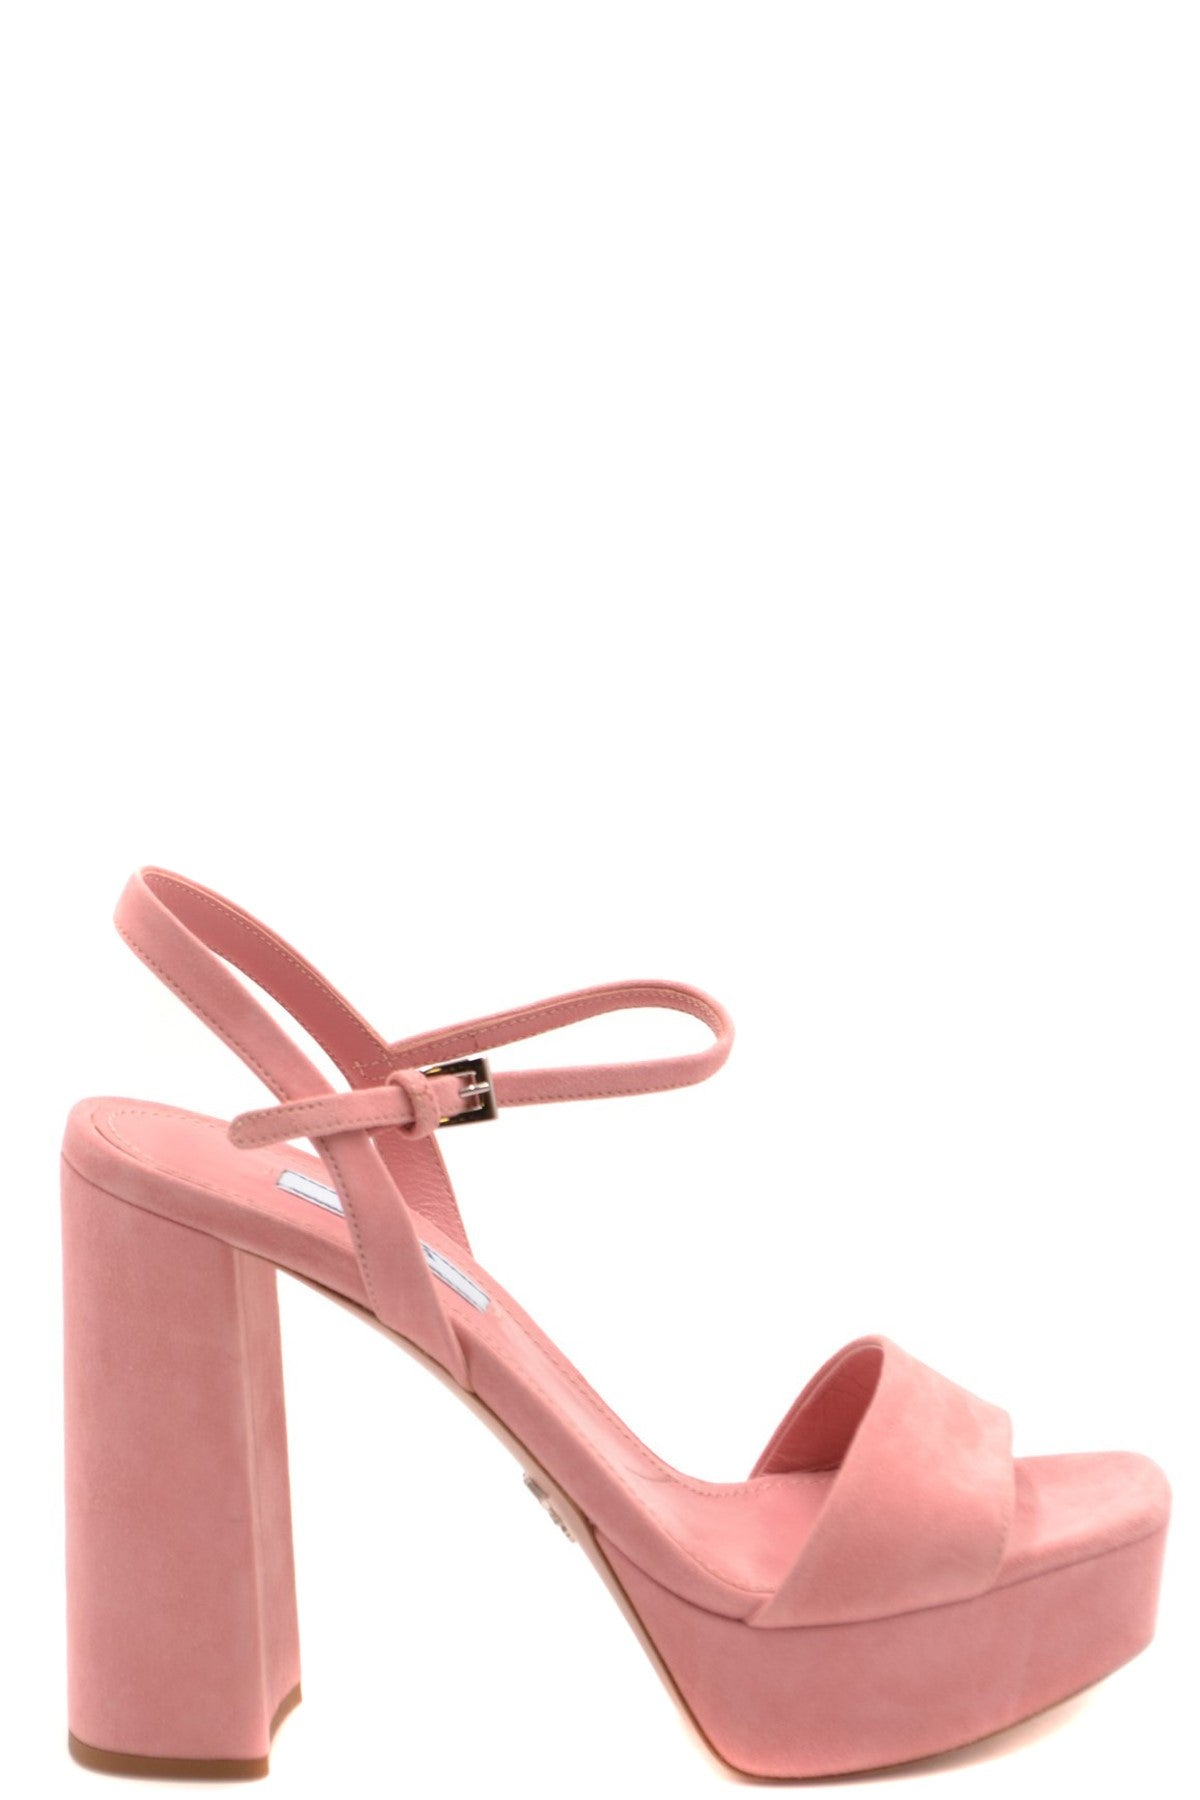 Shoes Prada-Women's Fashion - Women's Shoes - Women's Sandals-36.5-Product Details Terms: New With LabelMain Color: PinkType Of Accessory: ShoesSeason: Spring / SummerMade In: ItalyGender: WomanHeel'S Height: 12Size: EuComposition: Chamois 100%Year: 2020Manufacturer Part Number: 1Xp75A 008 F0025-Keyomi-Sook